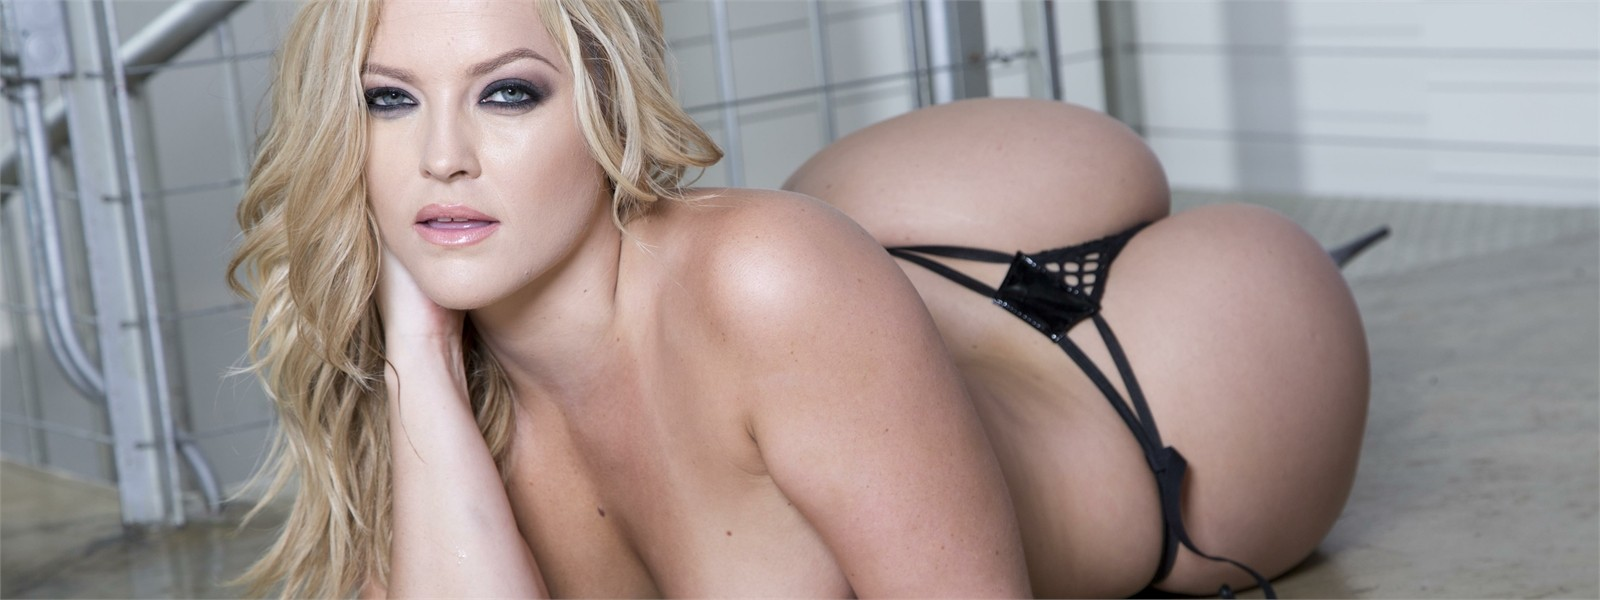 Porn Alexis Texas naked (69 photos), Sexy, Hot, Twitter, swimsuit 2020